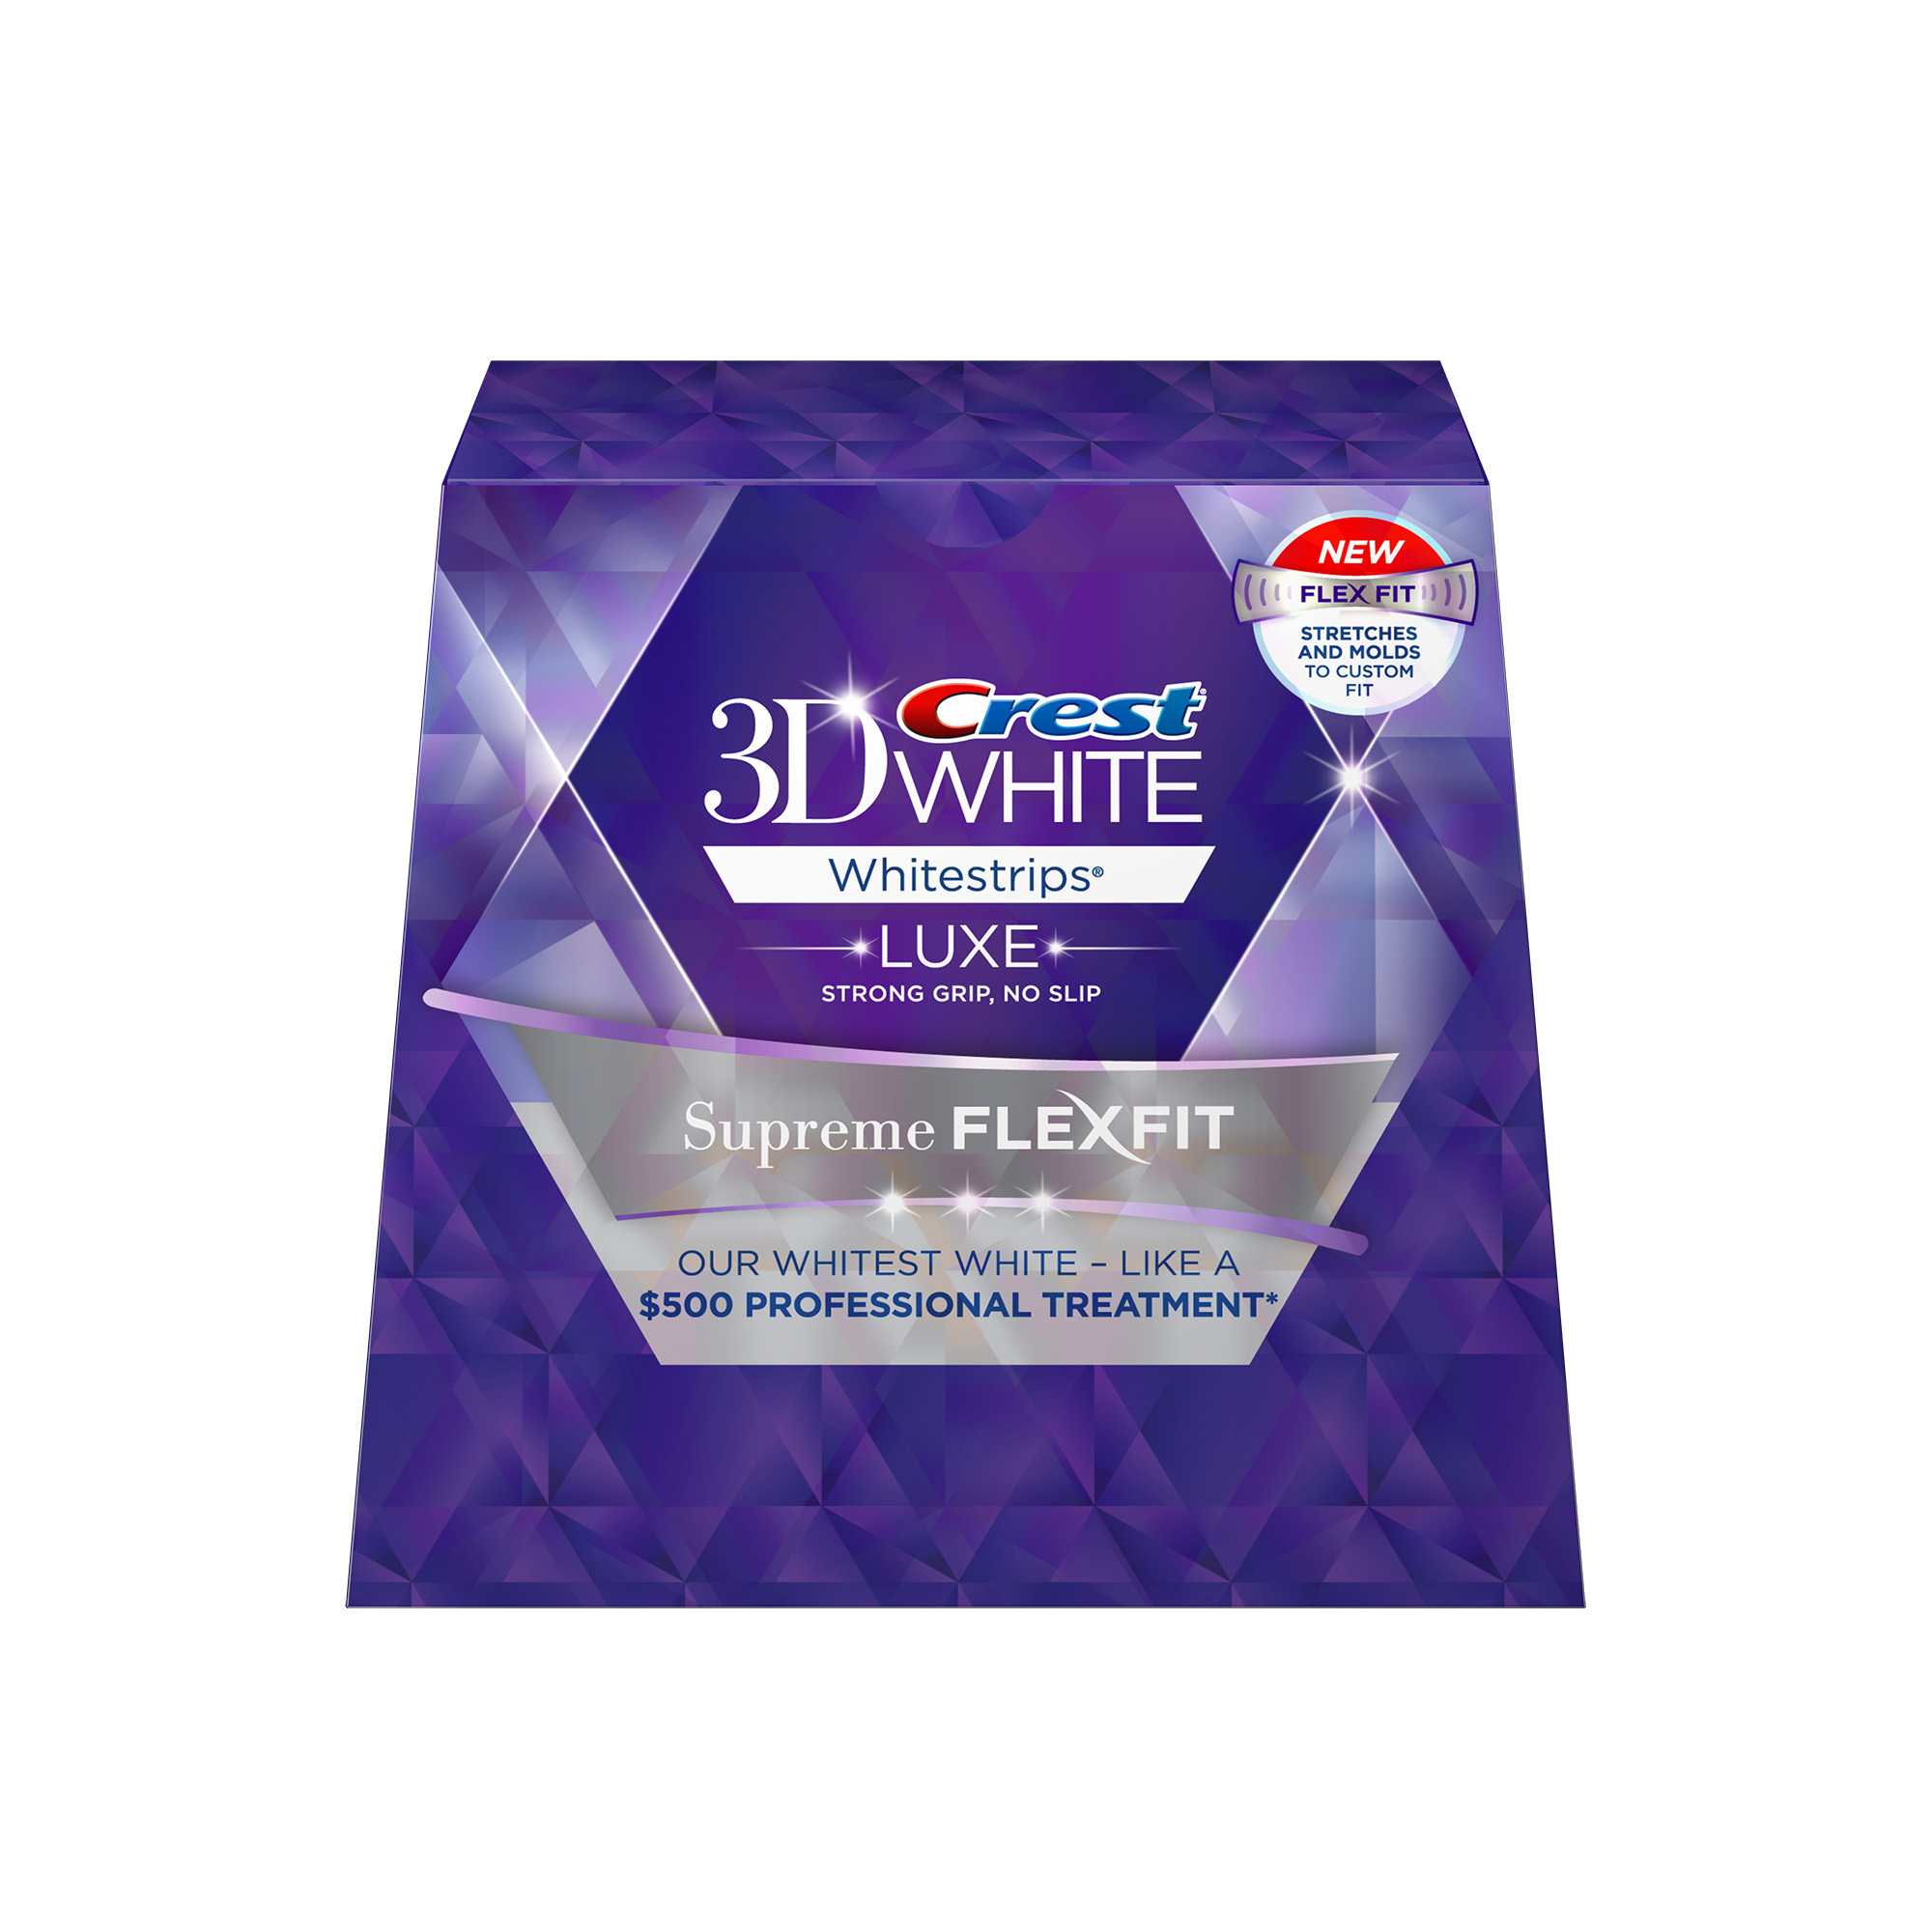 New Crest 3D White® Whitestrips Luxe Supreme FlexFit Provide 30% More Coverage for a Superior Whitening Experience (Photo: Business Wire)